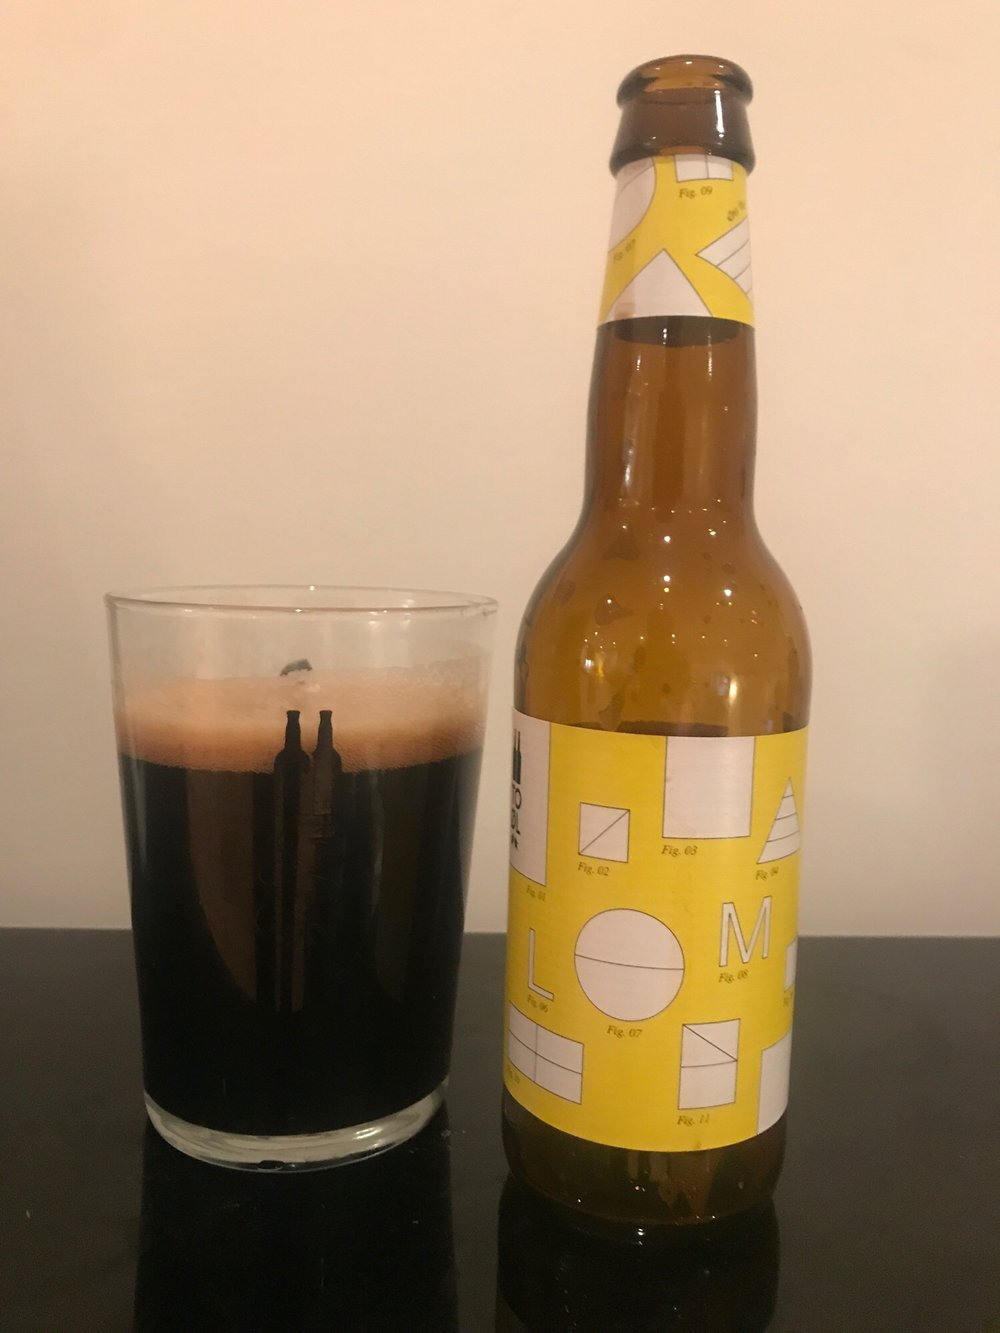 Day Twenty One: Let Mælk // Milk Stout 4.1% - I said earlier I wanted to try another variant of the 'Mælk' series so happy to see a yellow label pop out of the box.This is quite strange - it's very smooth and rich but lacks any body and is very thin so is a bit of a head fuck. It's quite a traditional stout and lacks any weird adjuncts which is quite refreshing.It's very enjoyable and tastes stronger than it should. It's billed as a 'session milk stout' but I'm not sure I'd want to chin a lot of these. Good though.